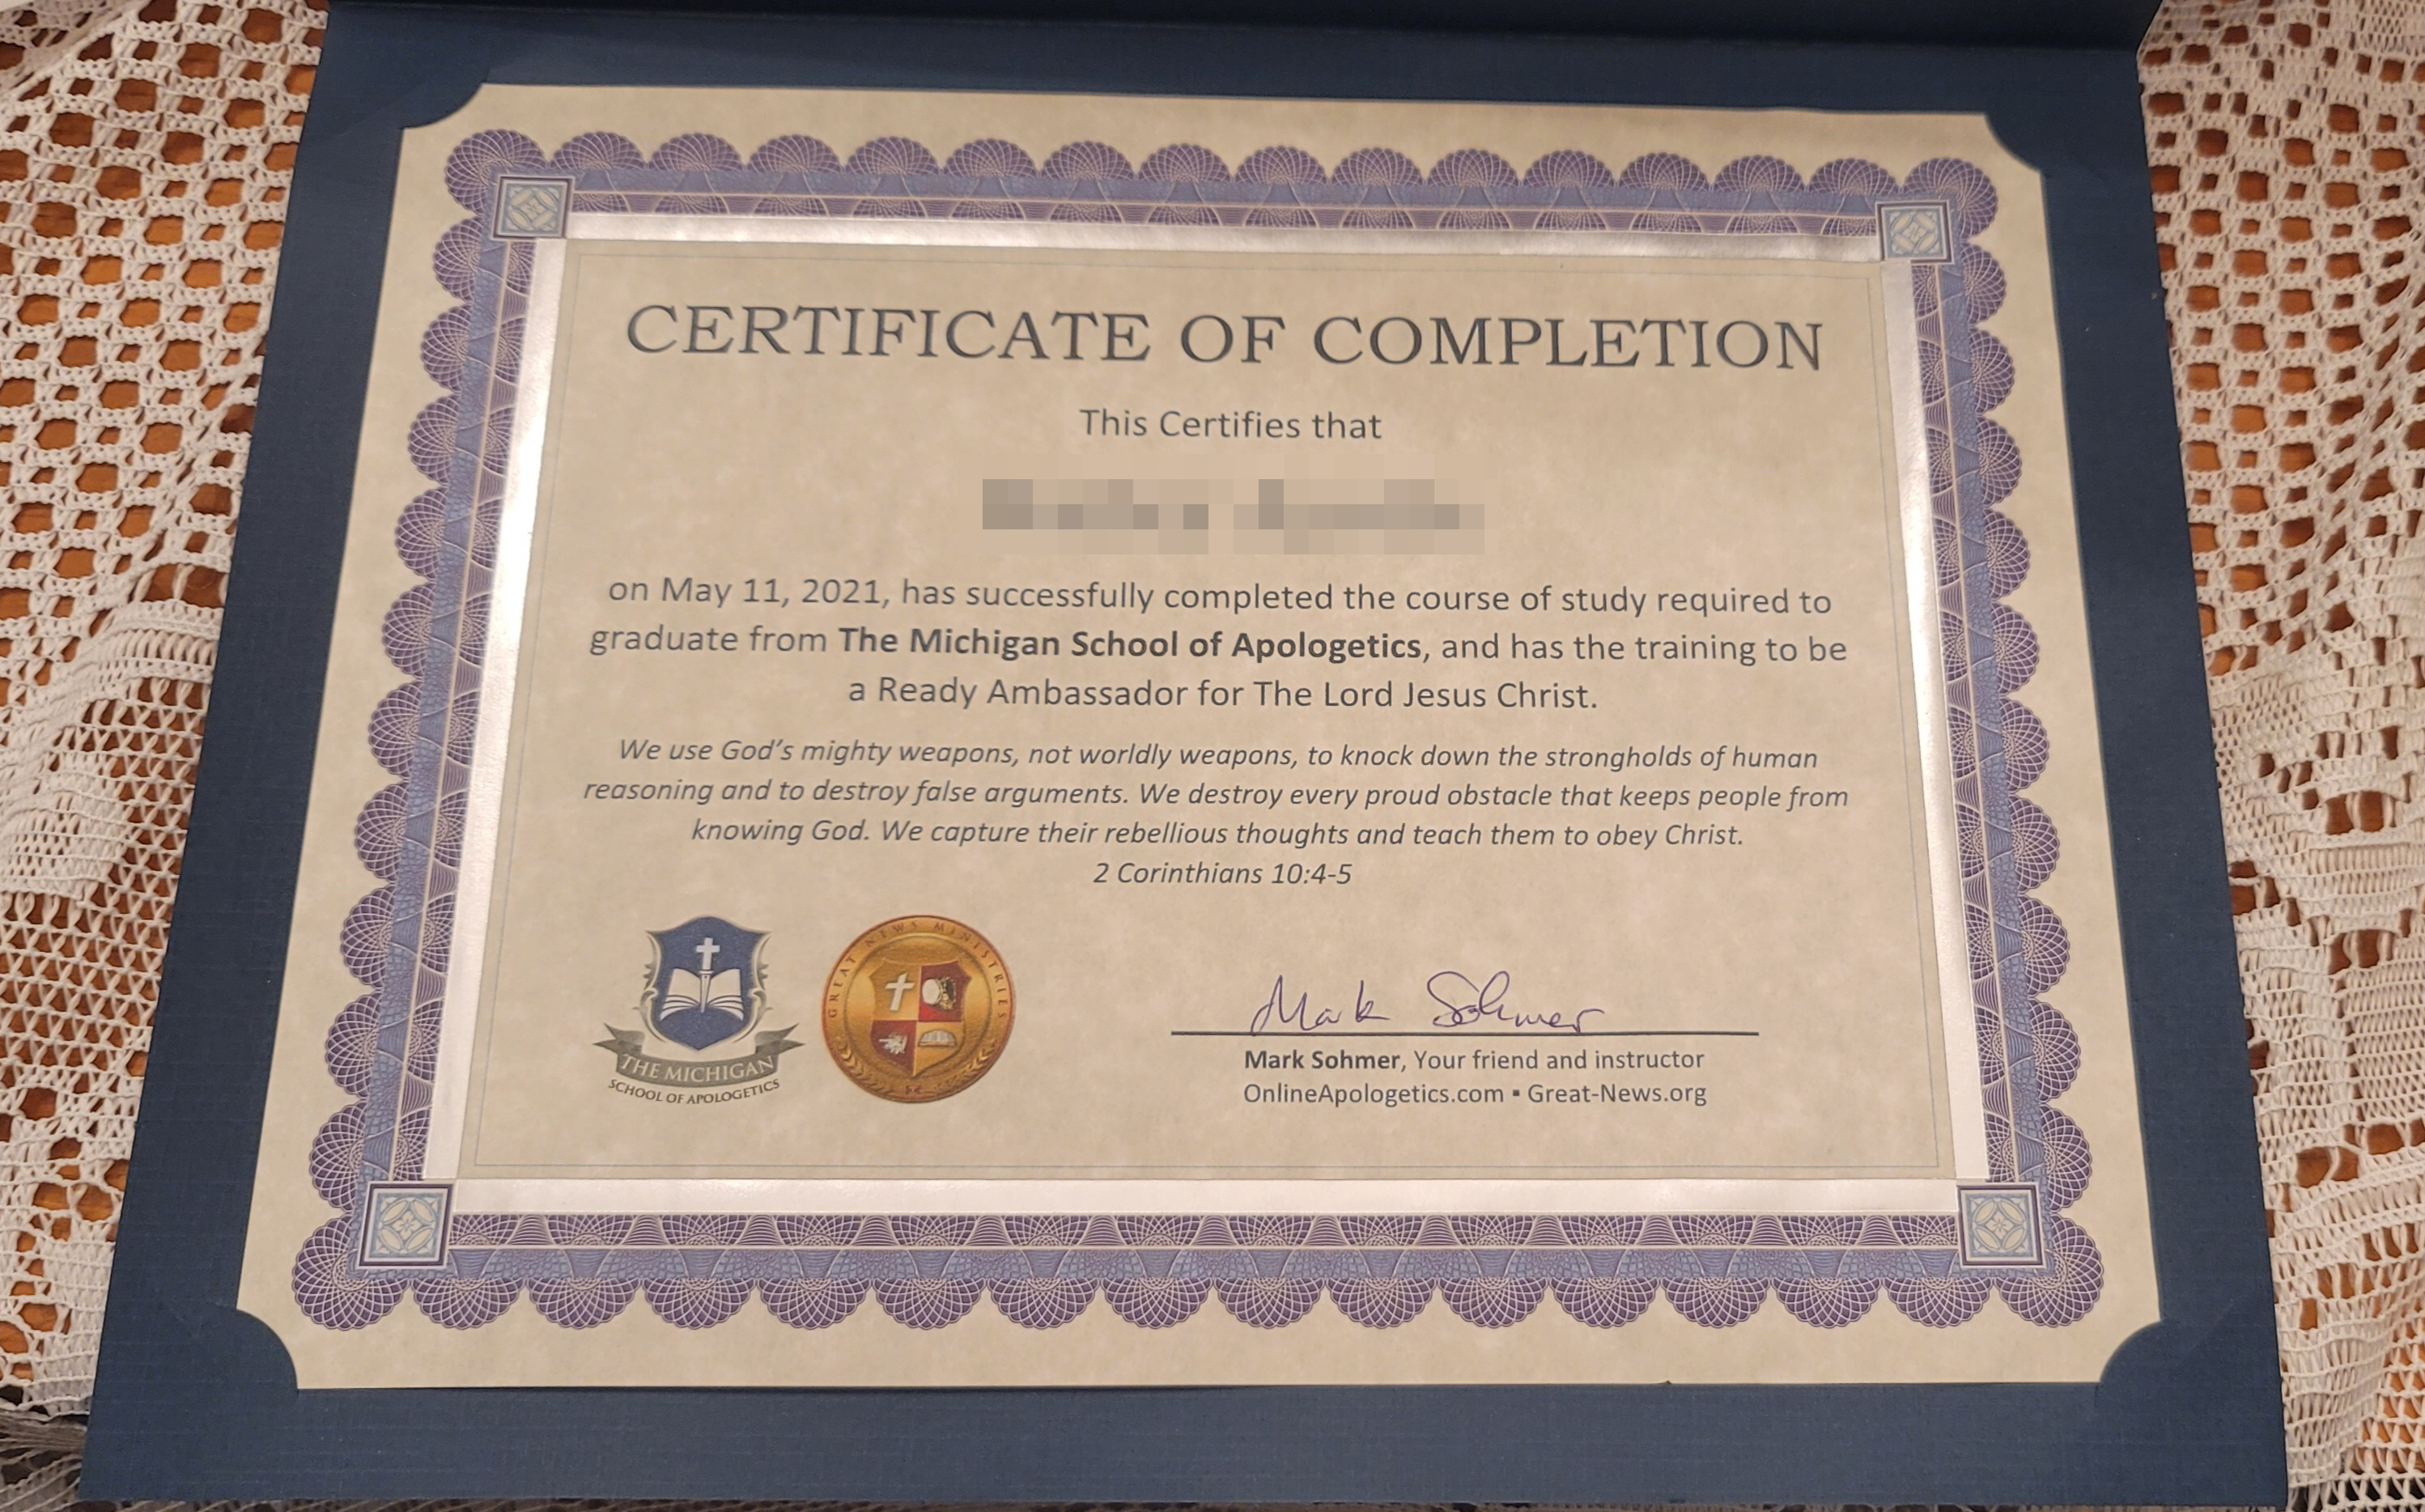 Each Student got one of these Certificates.